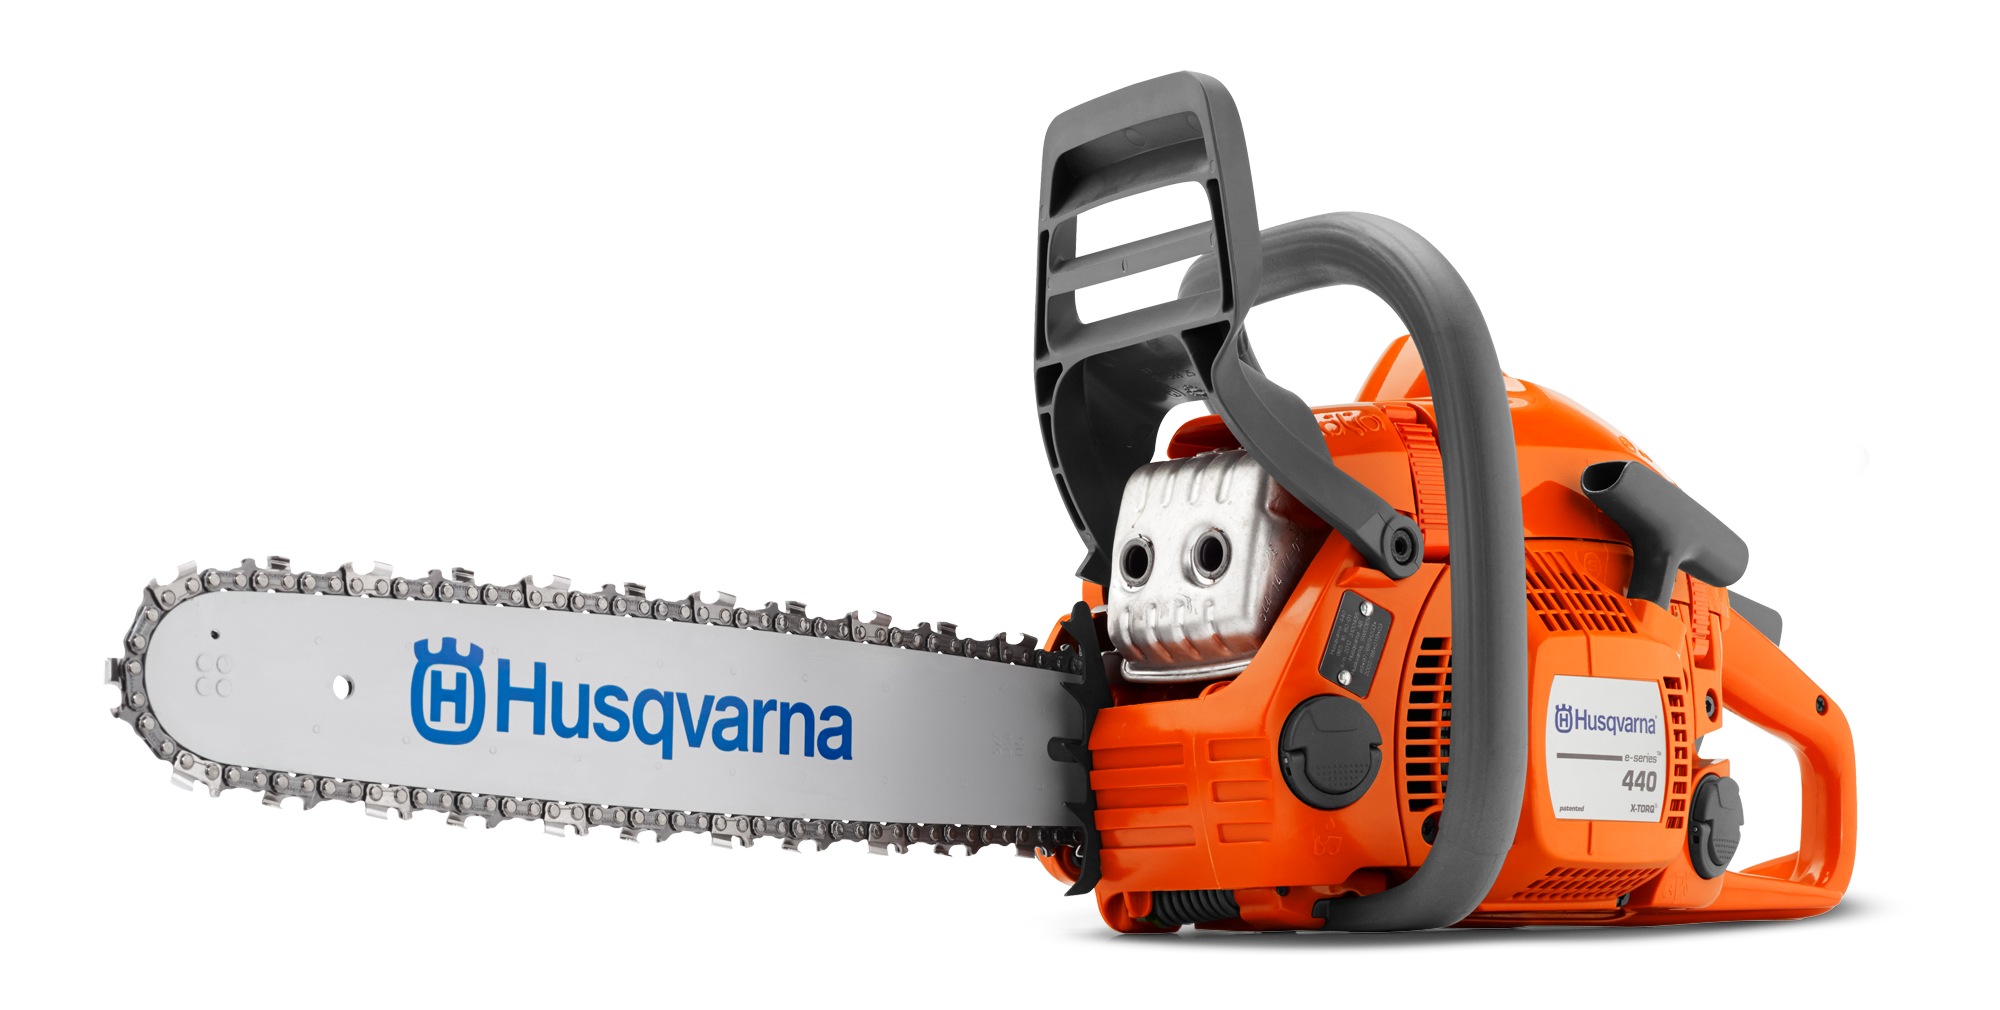 Image for 440e II Gas Chainsaw                                                                                                             from HusqvarnaB2C